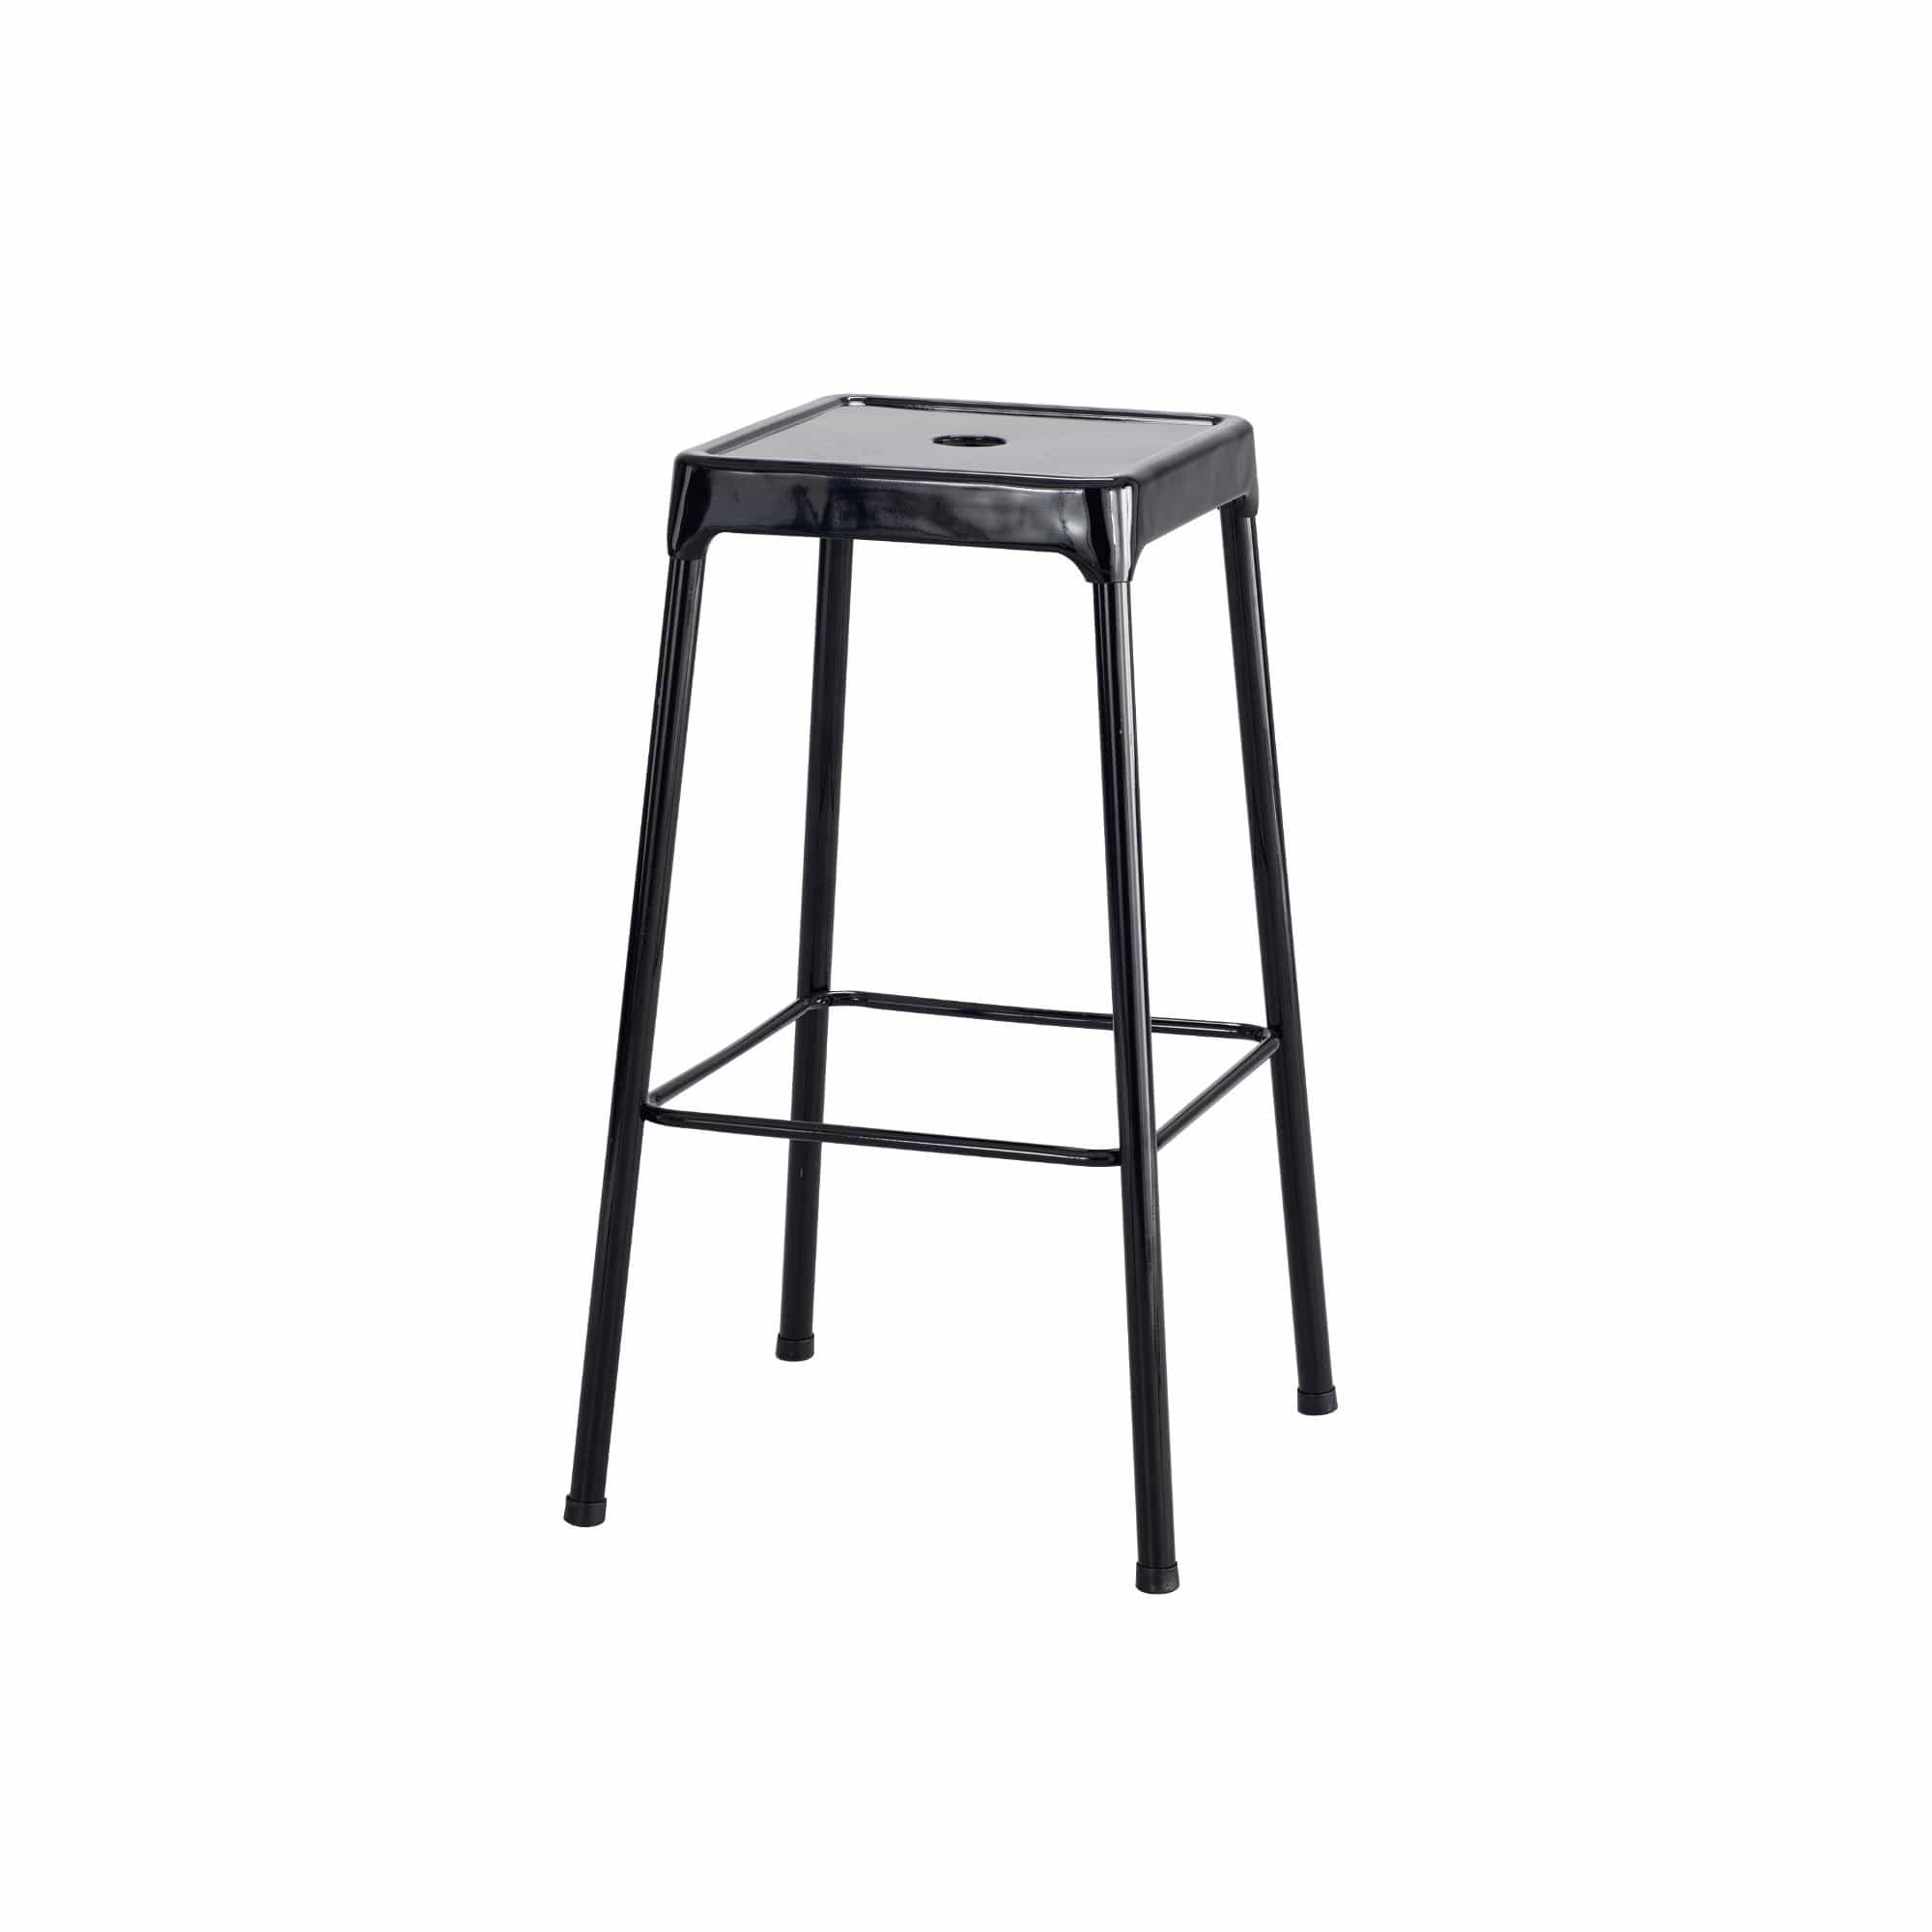 bedinhome - Industrial Seating 250 lbs Weight Capacity 29 H Steel Bar Height Stool - Safco - Counter Height Stool